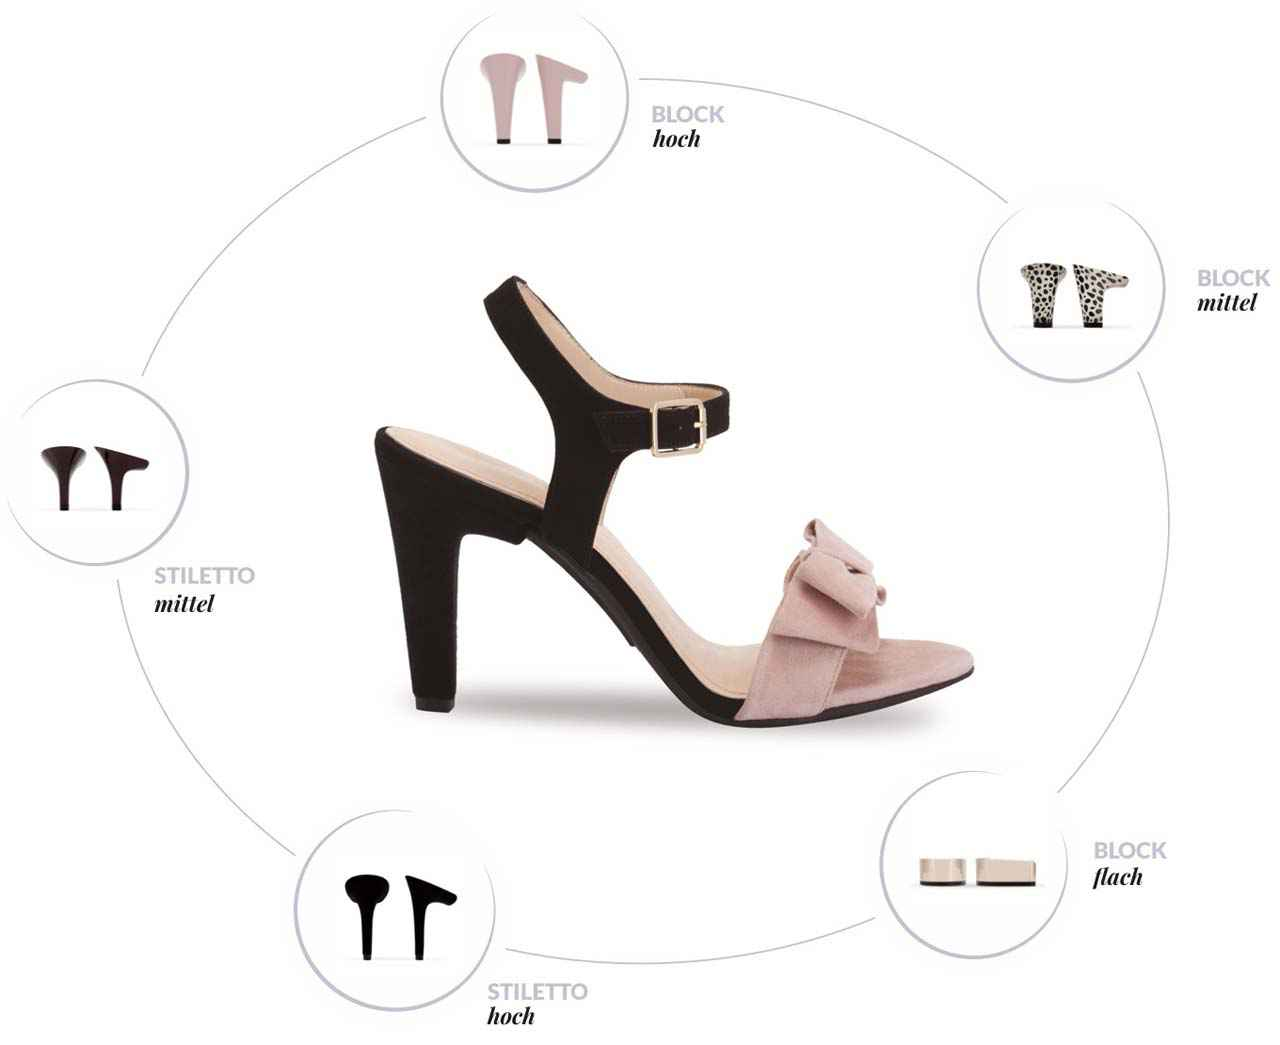 mime-et-moi-chaussure-modulaire-001